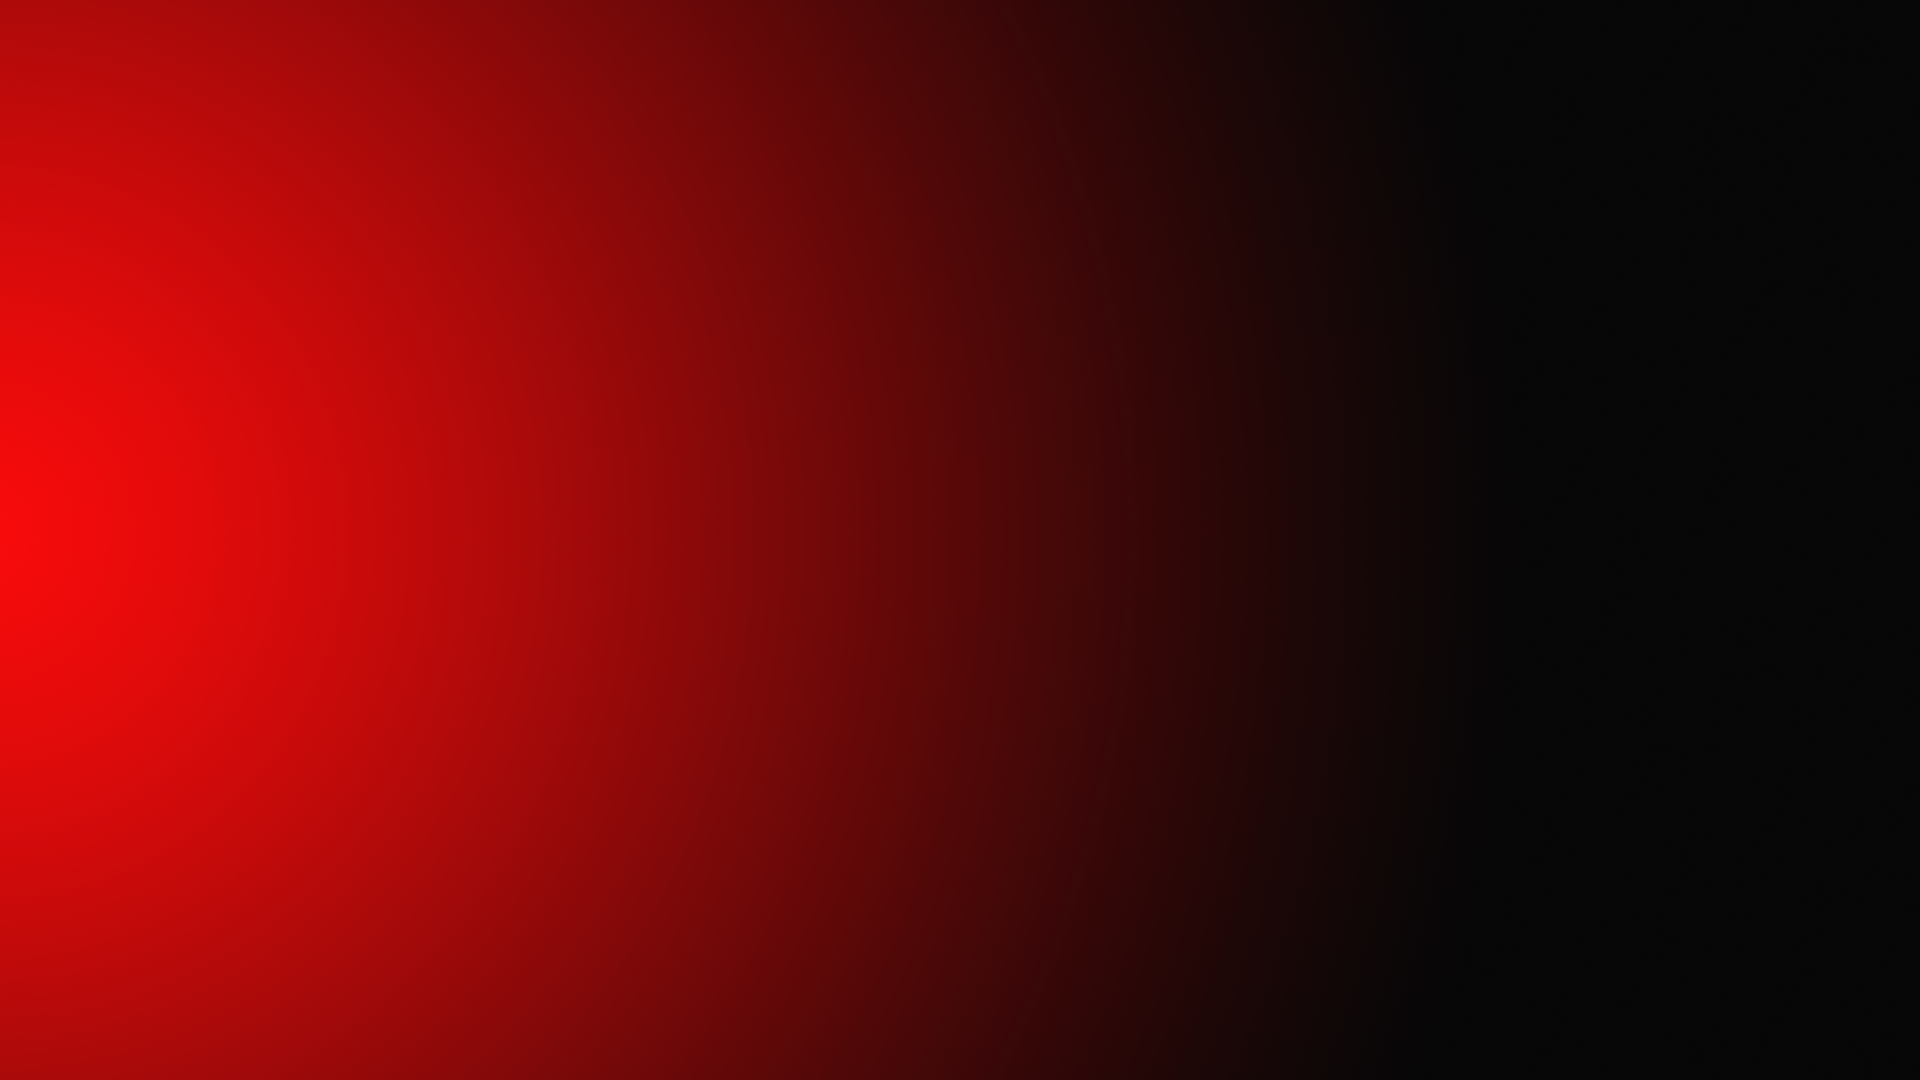 Red And Black Background wallpaper - 1447437